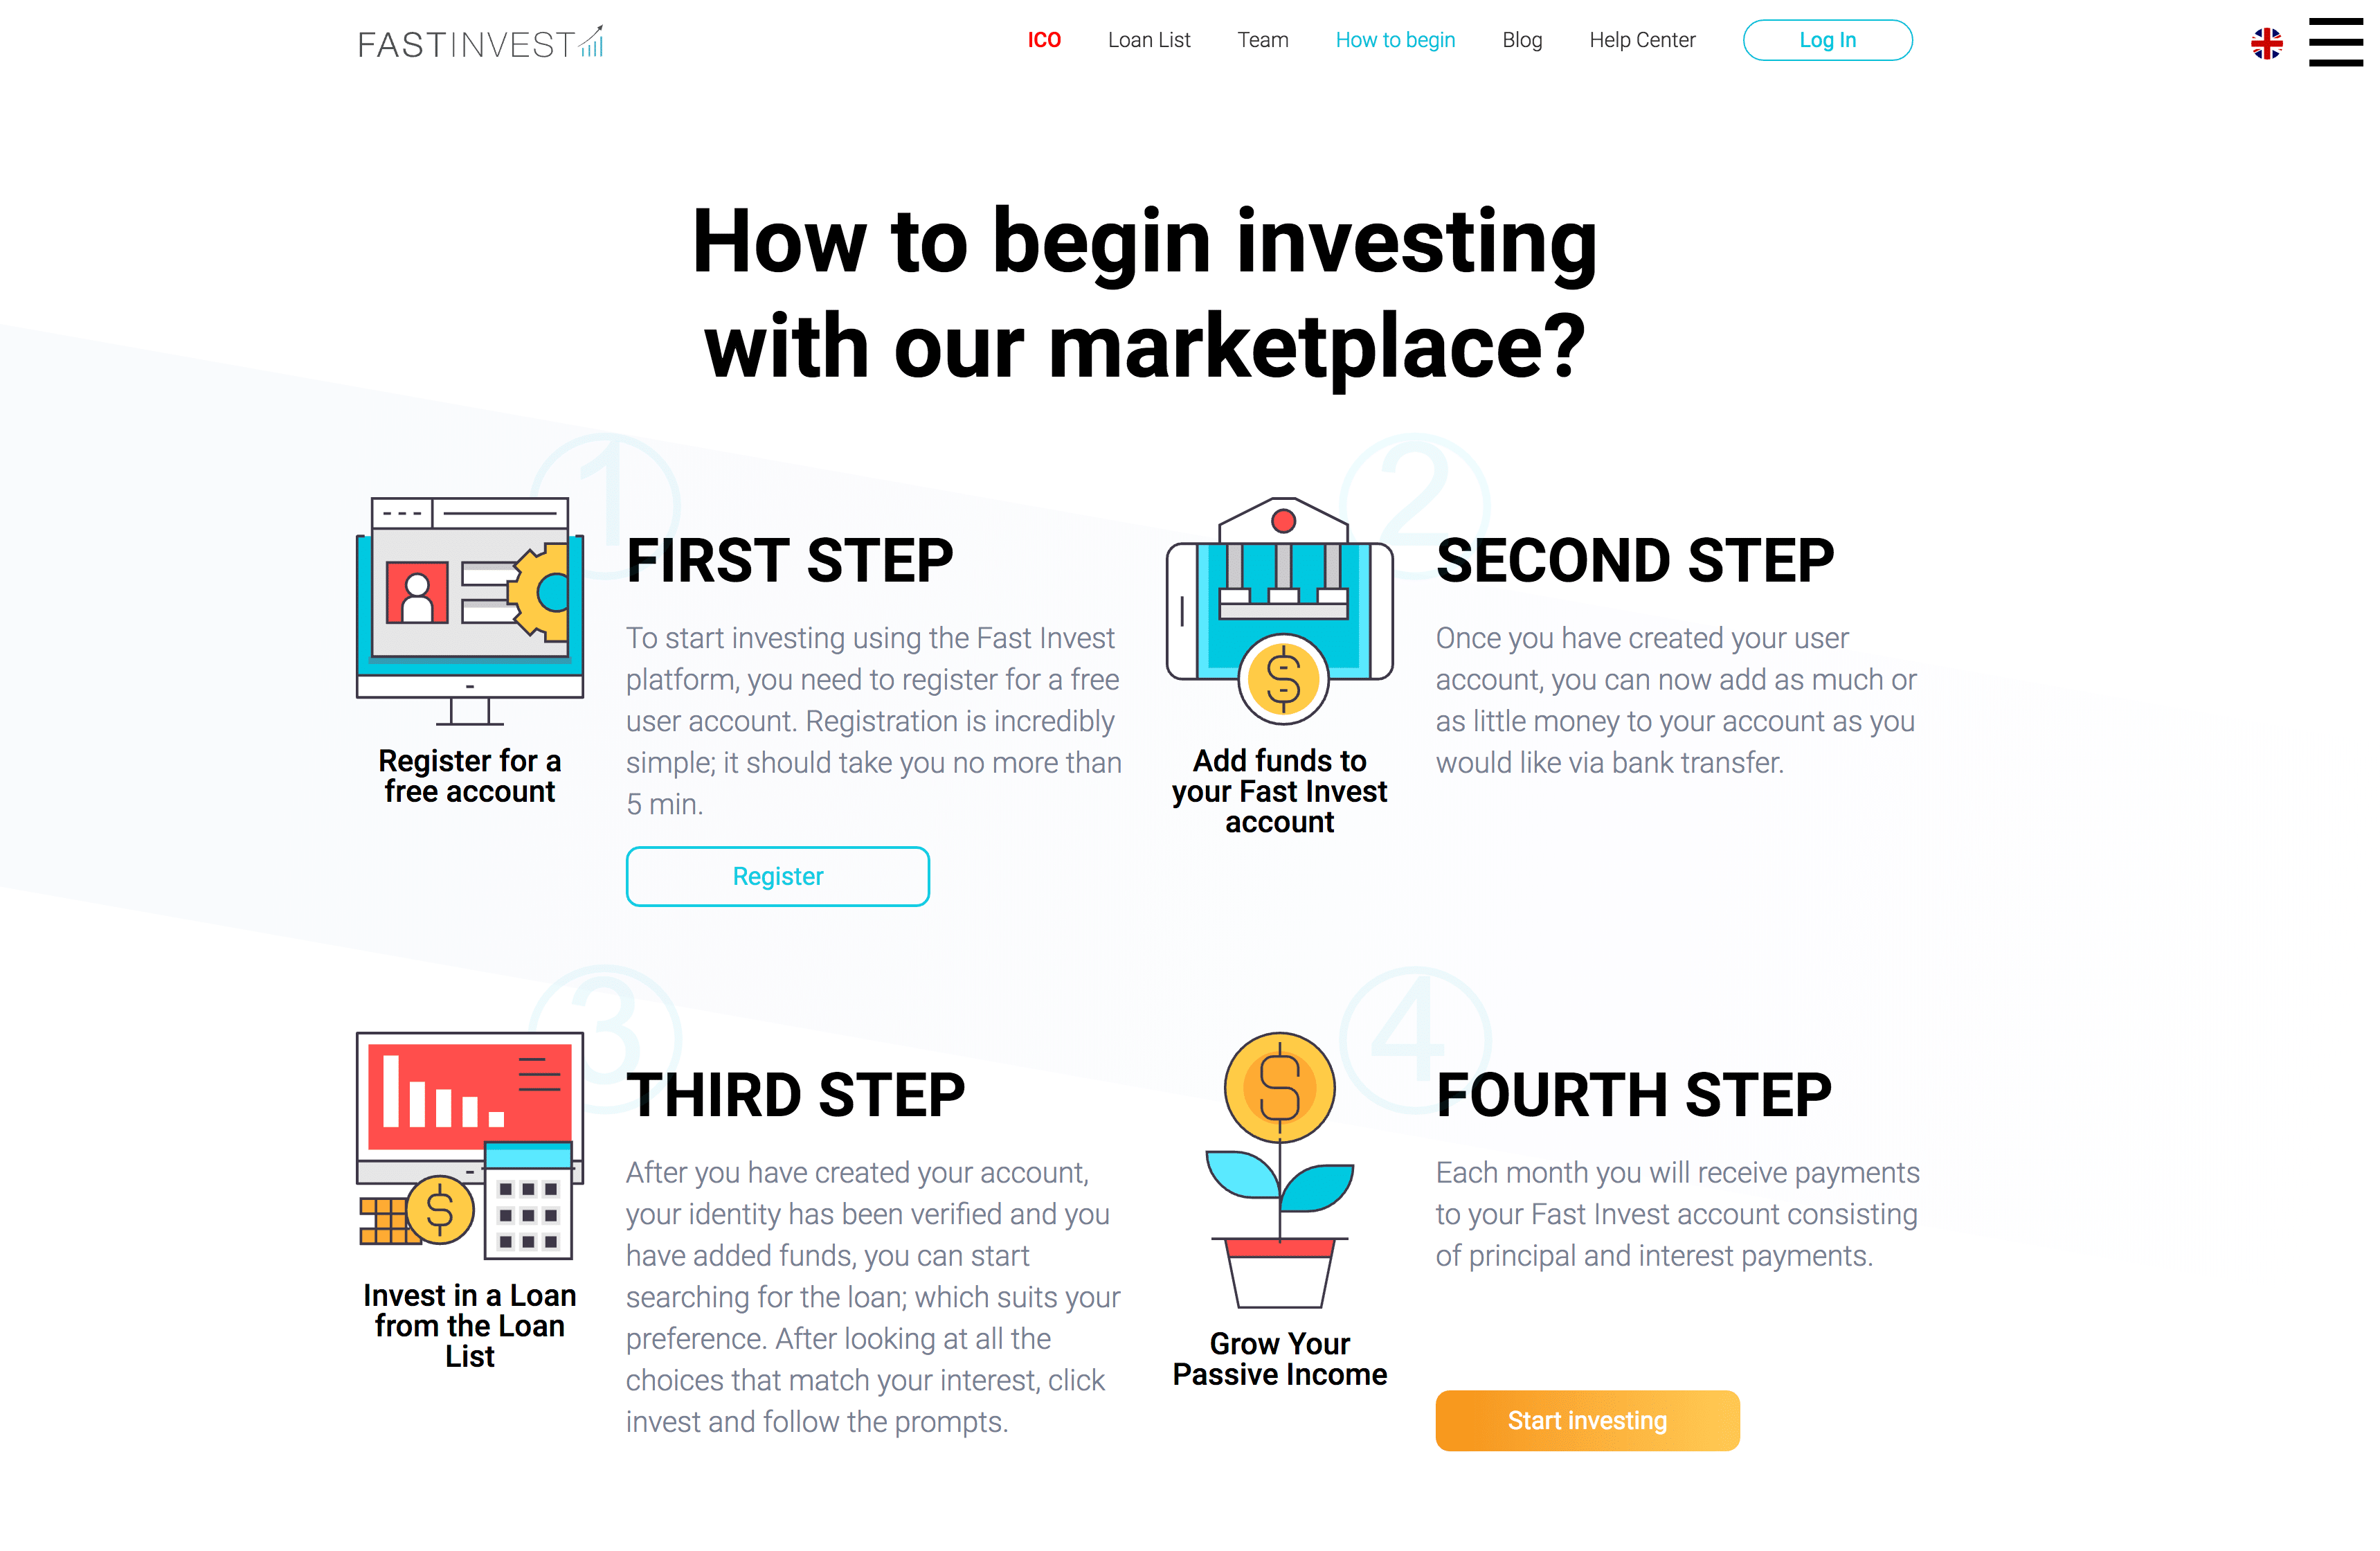 Fast invest crowdlending investment